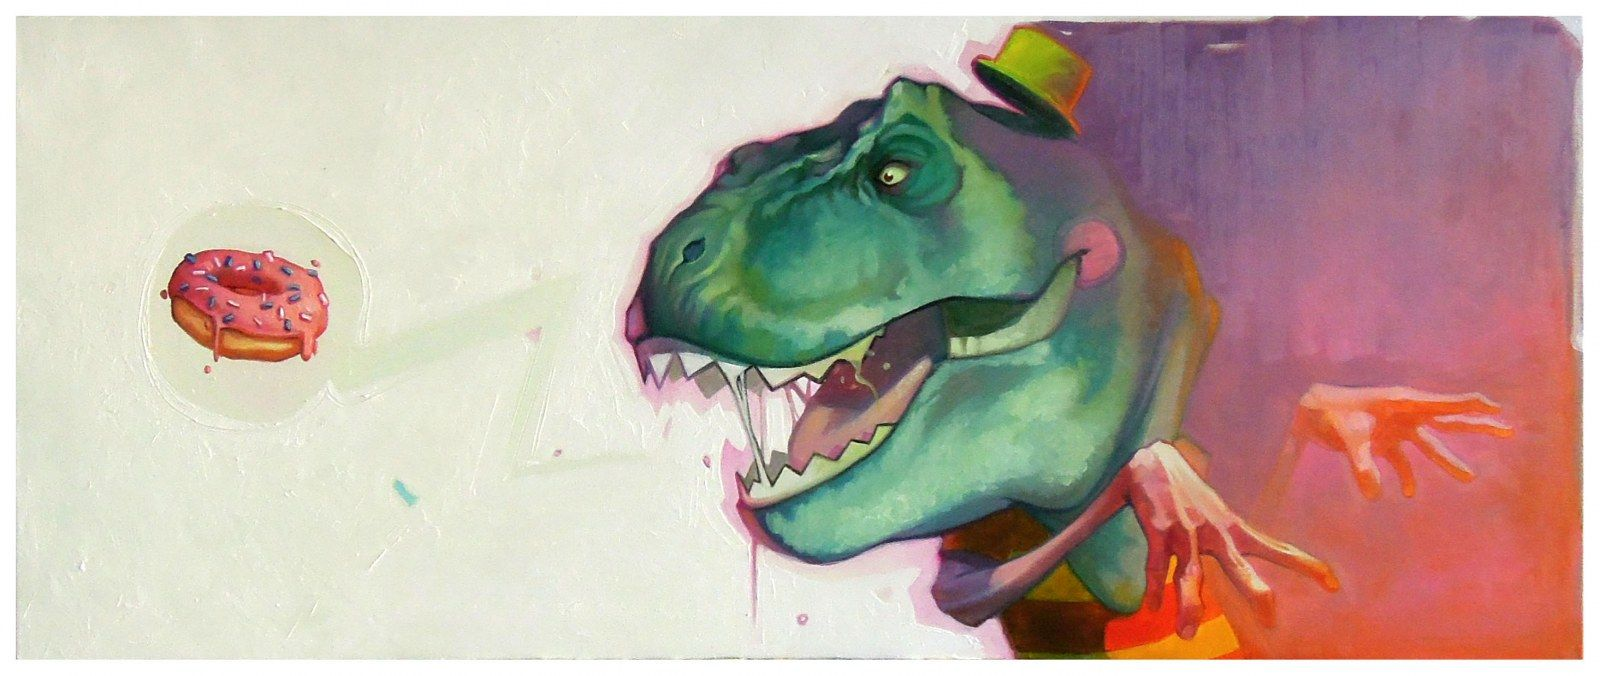 Sainer : Hungry  oil on canvas 50x120cm, 2012